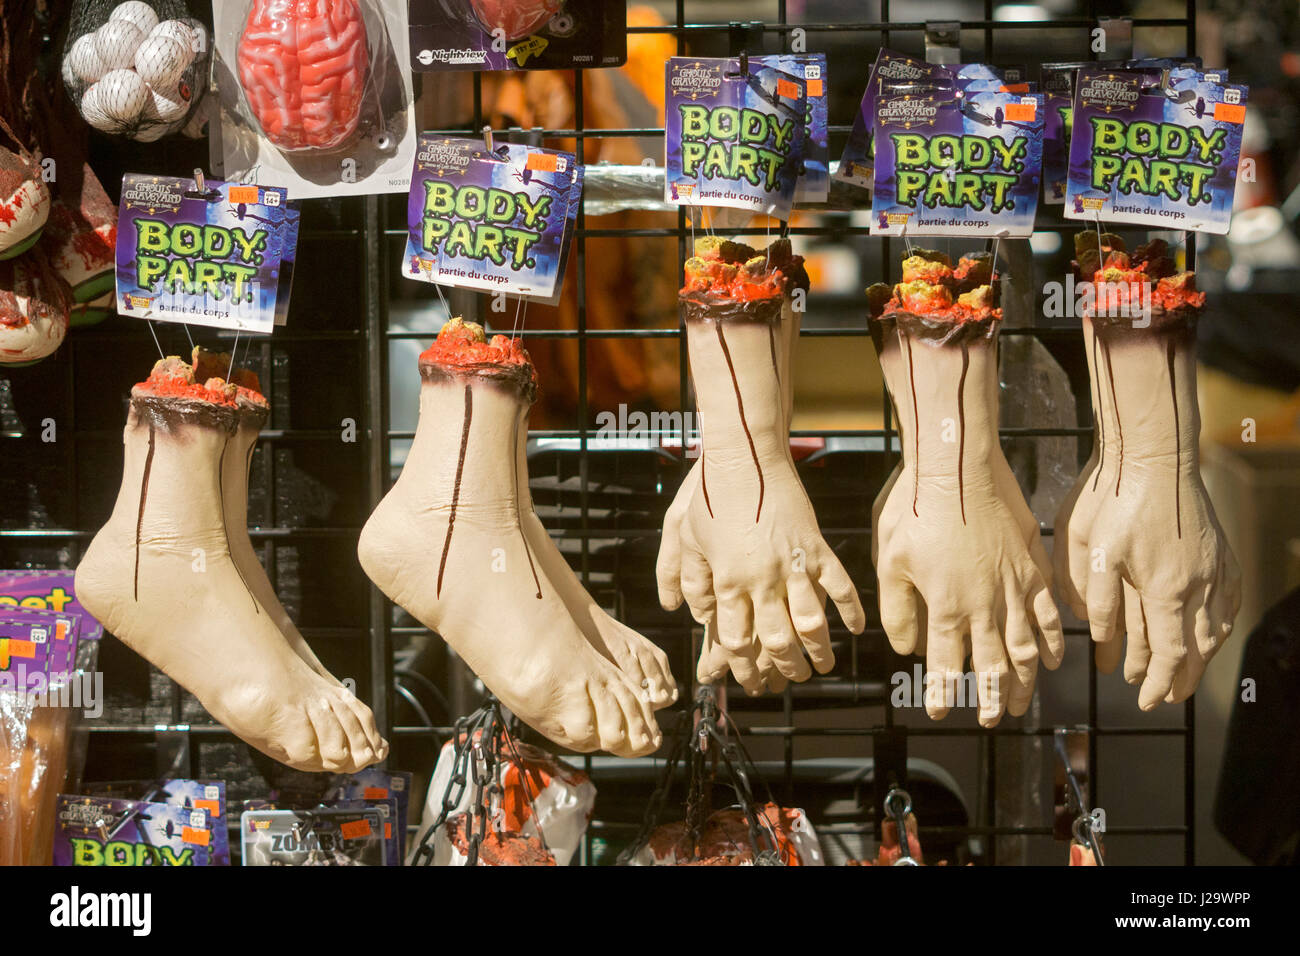 Hand and foot body parts for sale at the Halloween Adventure in ...